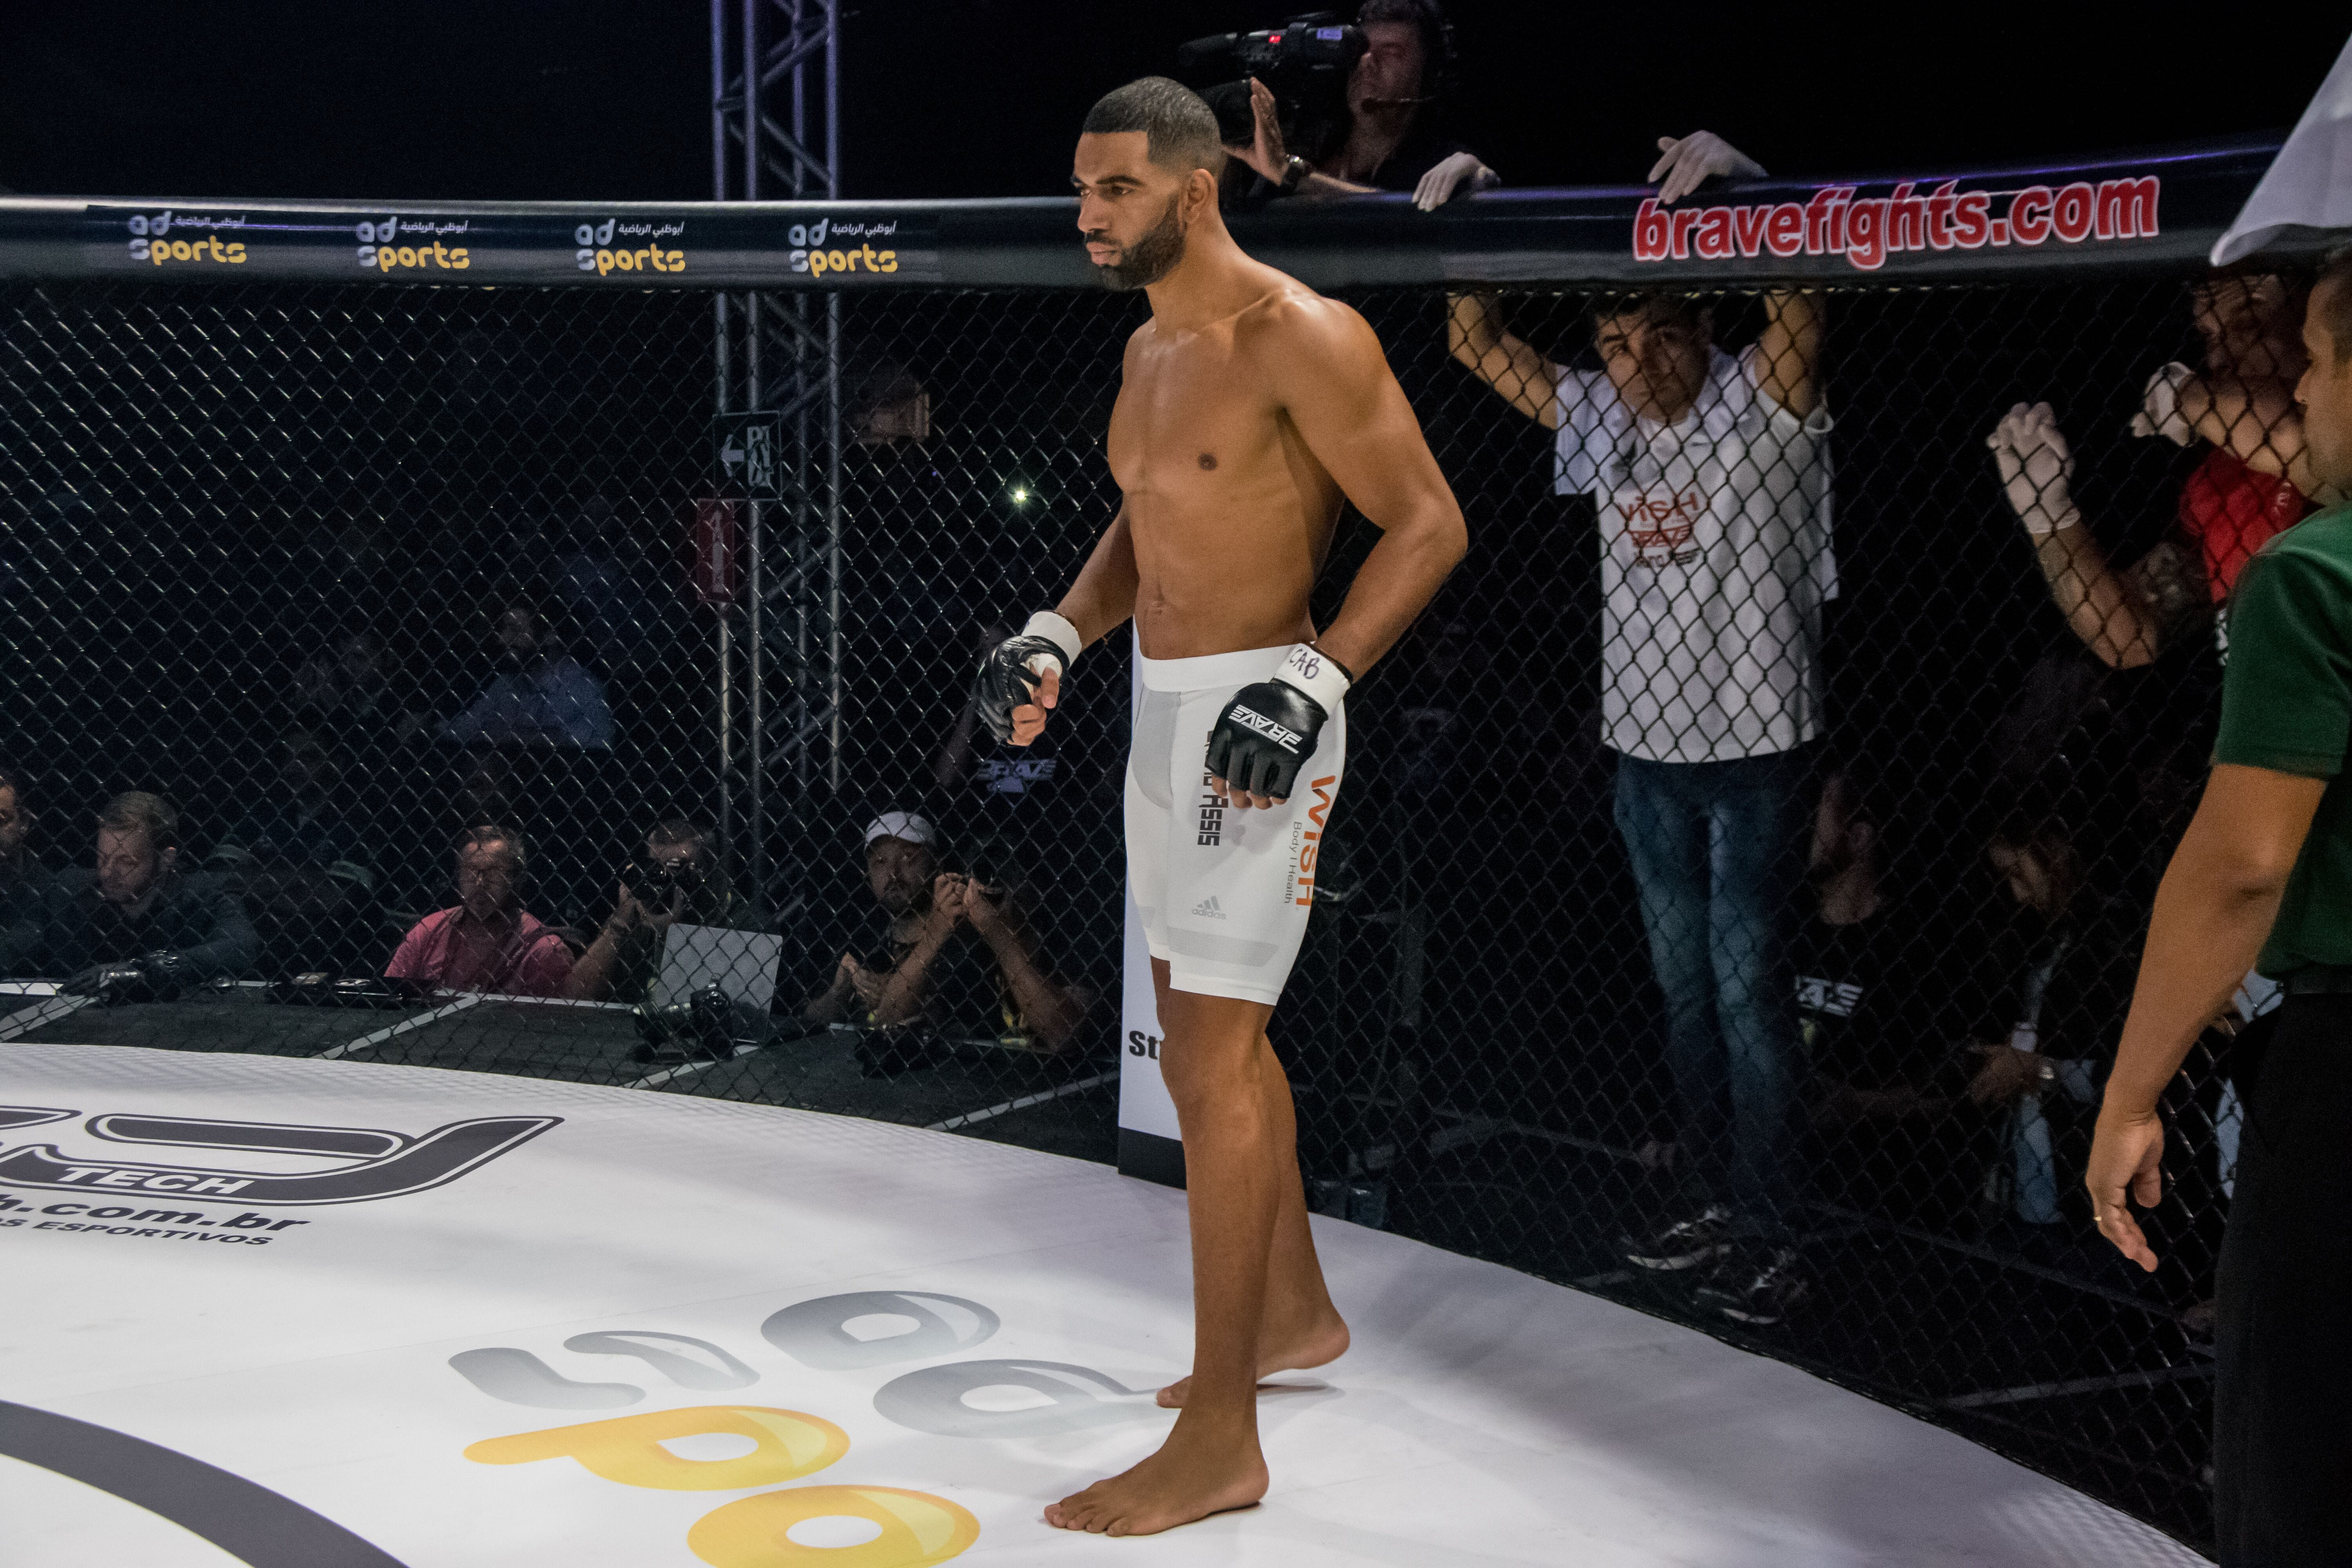 Bruno Assis vows to win at BRAVE 25 and then fight for the title: 'I deserve it' -